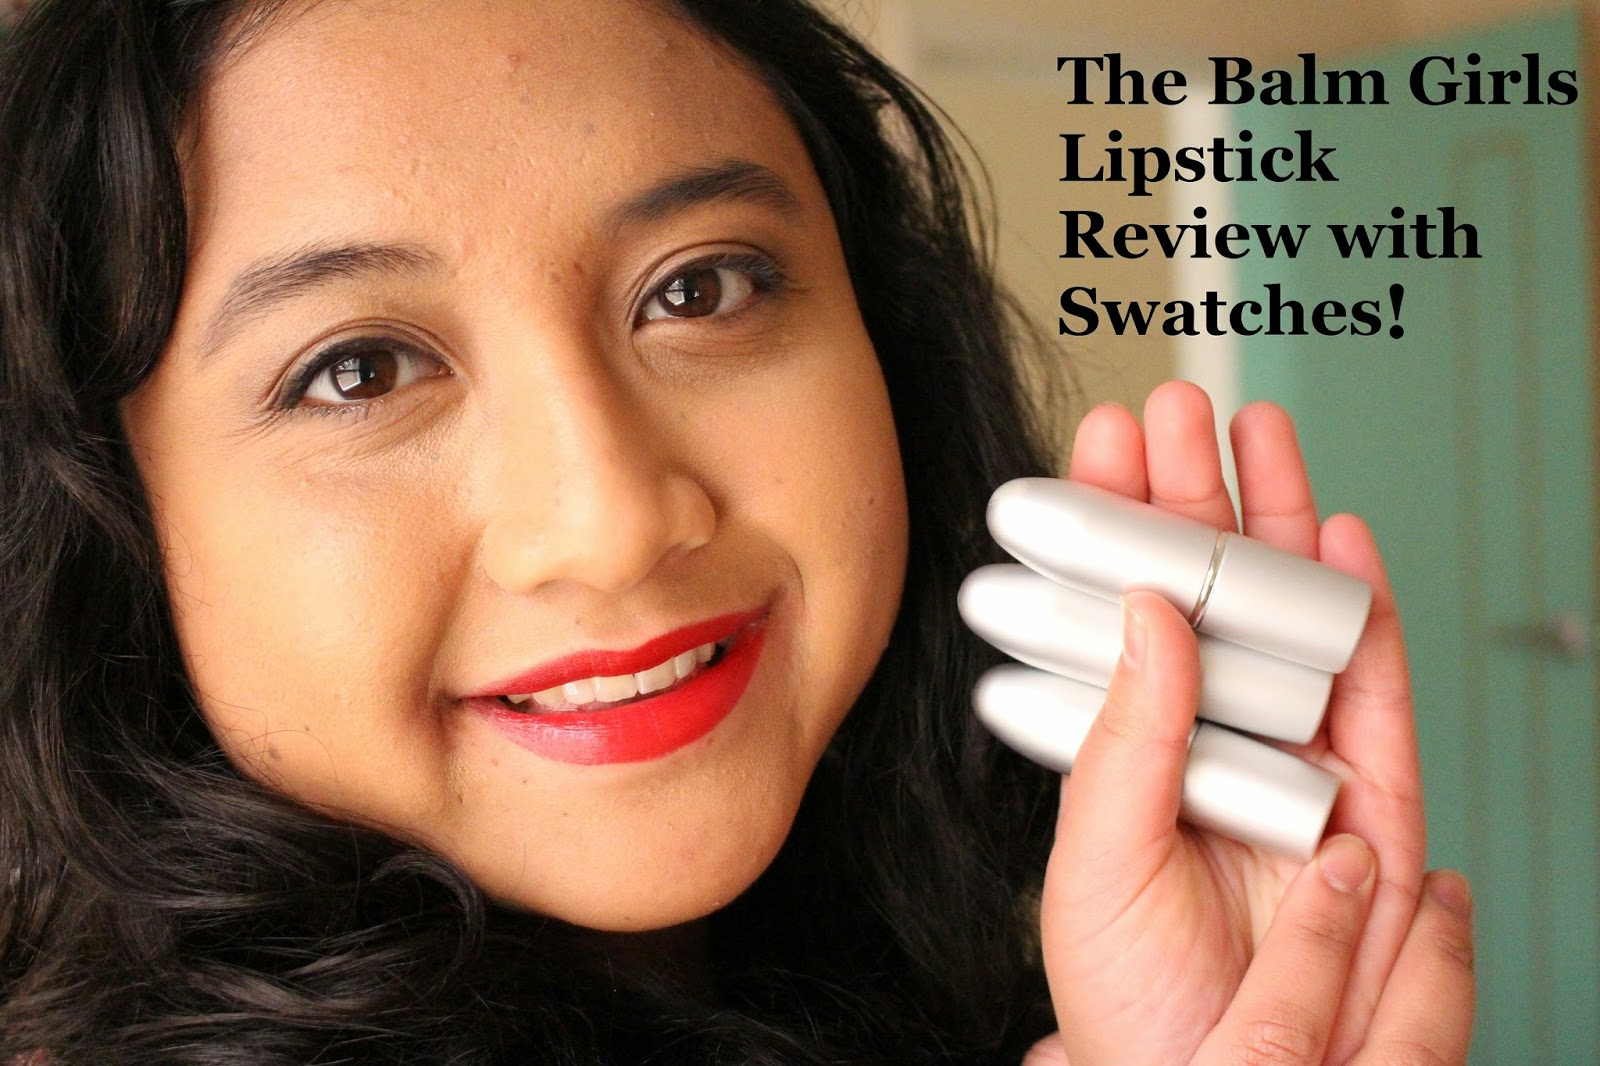 The Balm Girls Lipstick Review with Swatches! (Mai Billsbepaid, Ima Goodkisser, Mia Moore)